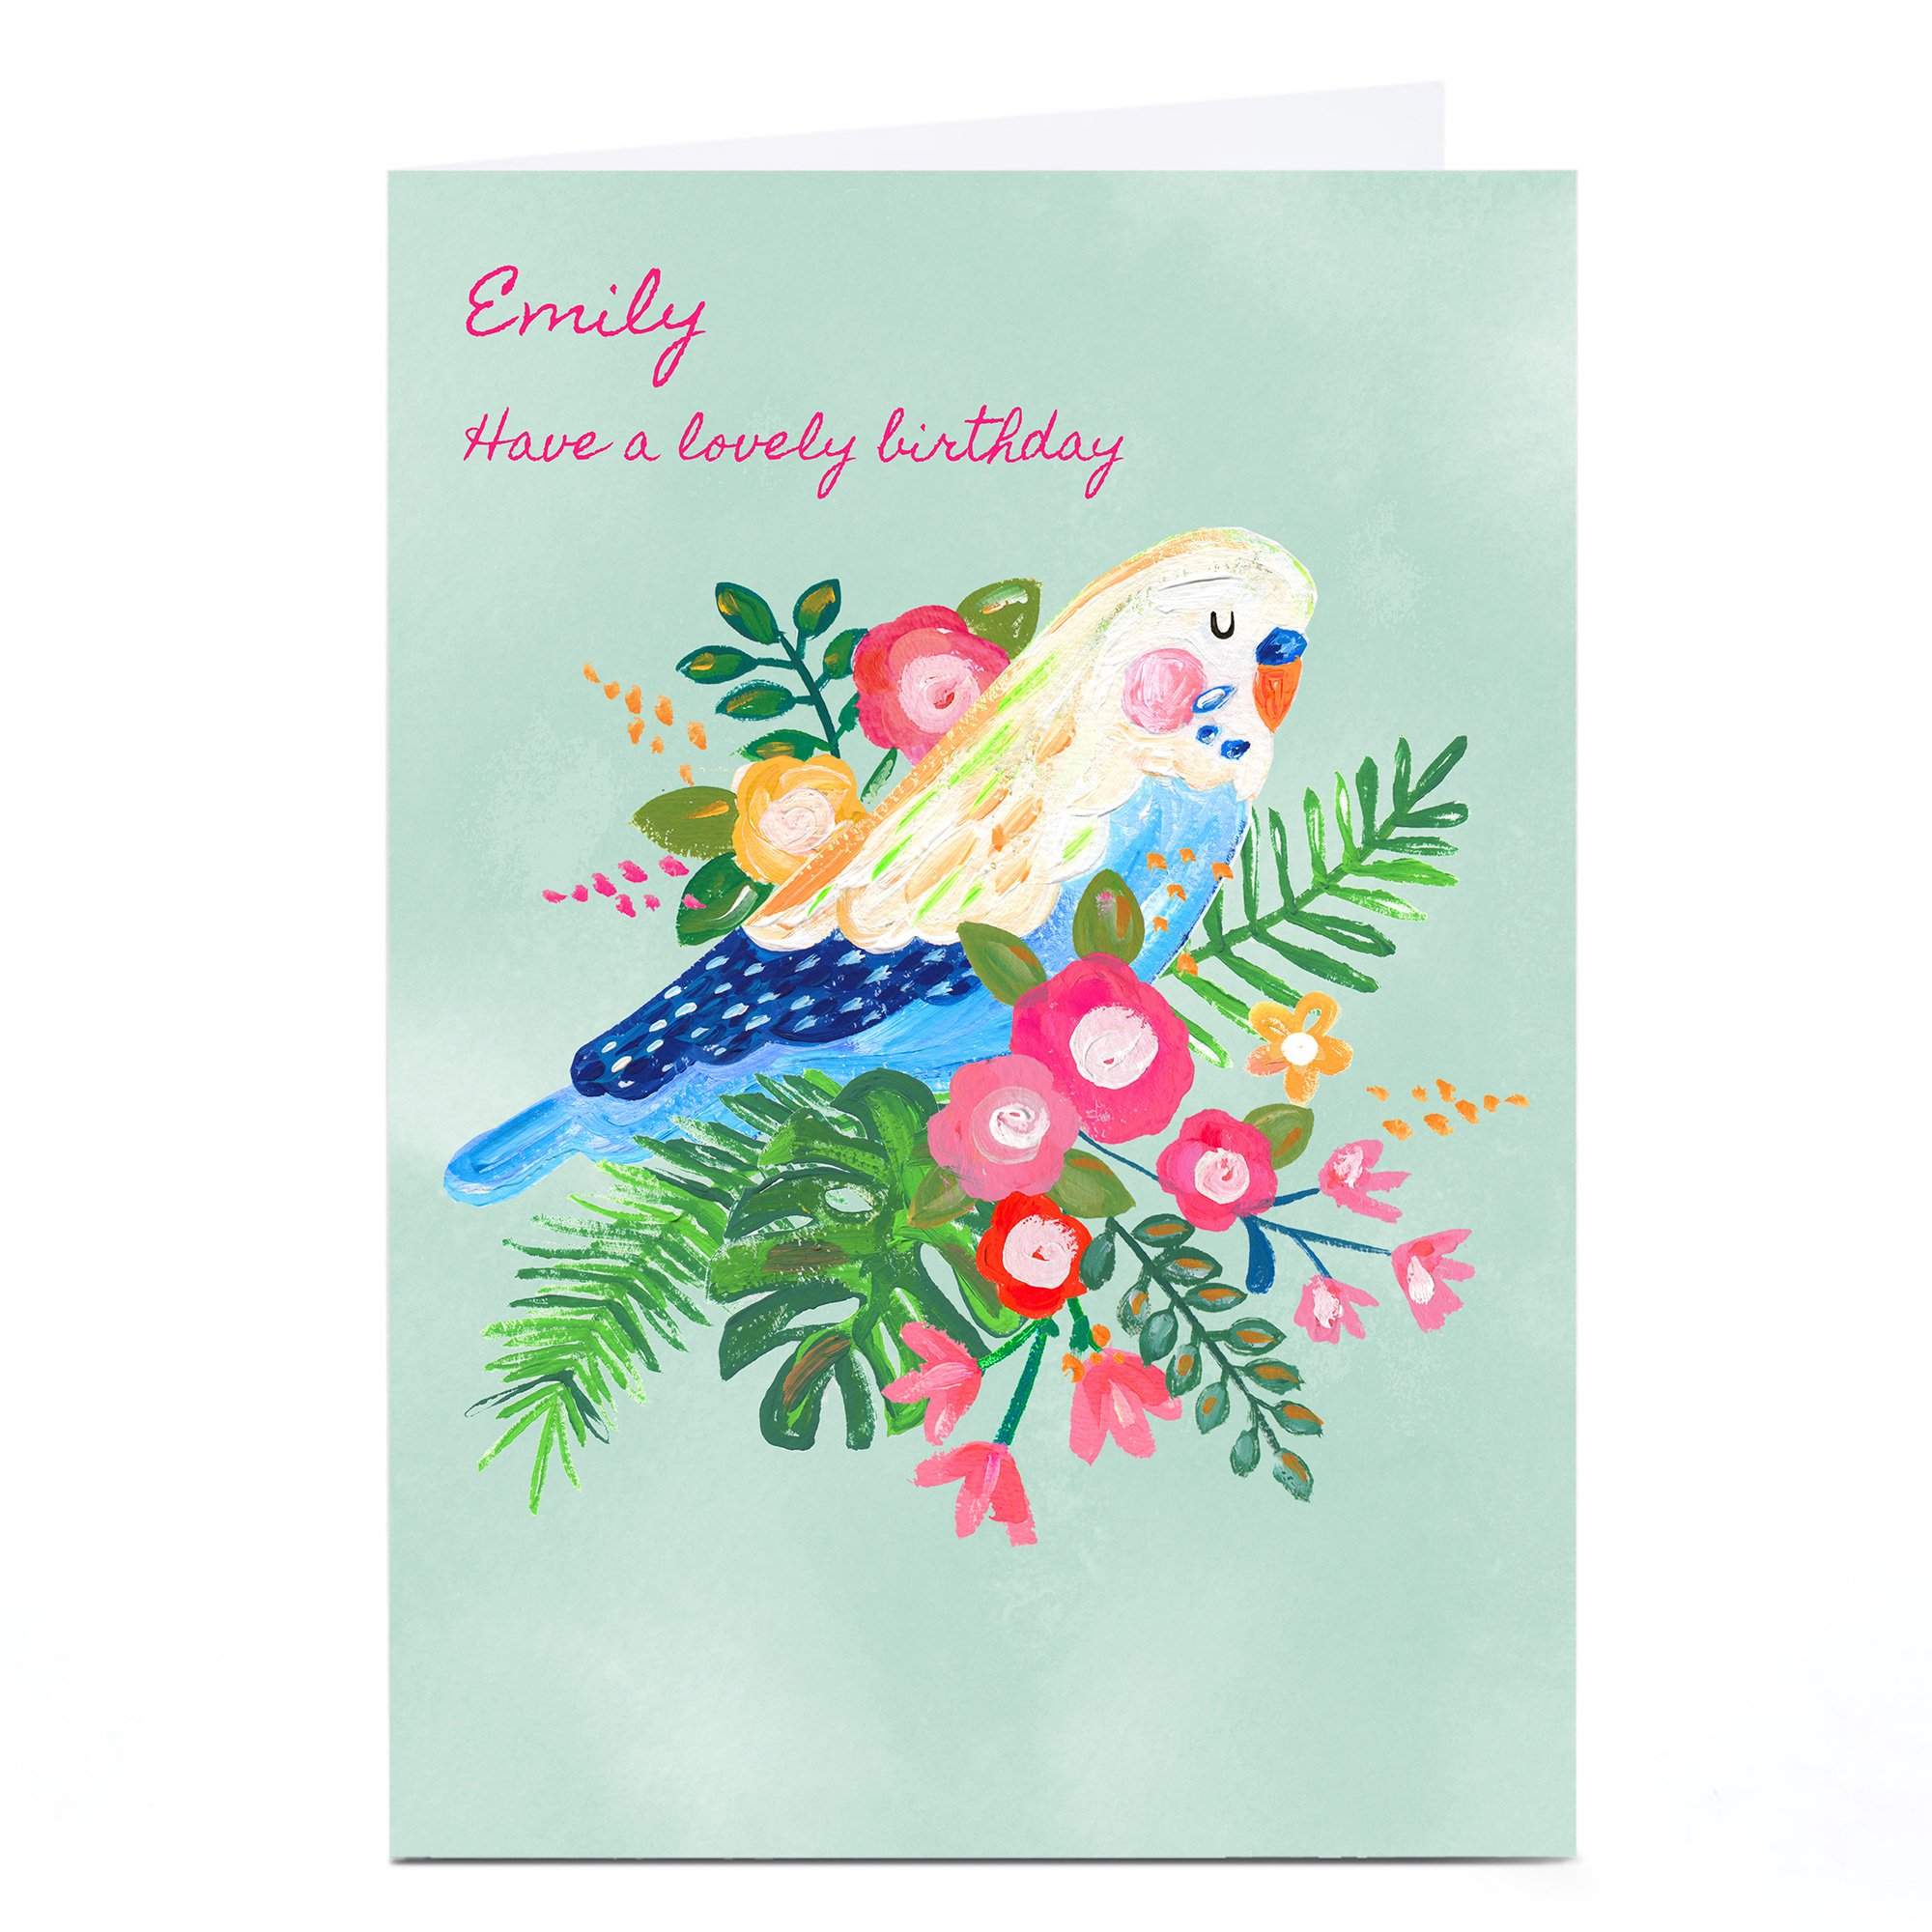 Personalised Kerry Spurling Card - Floral Bird [Any Message]